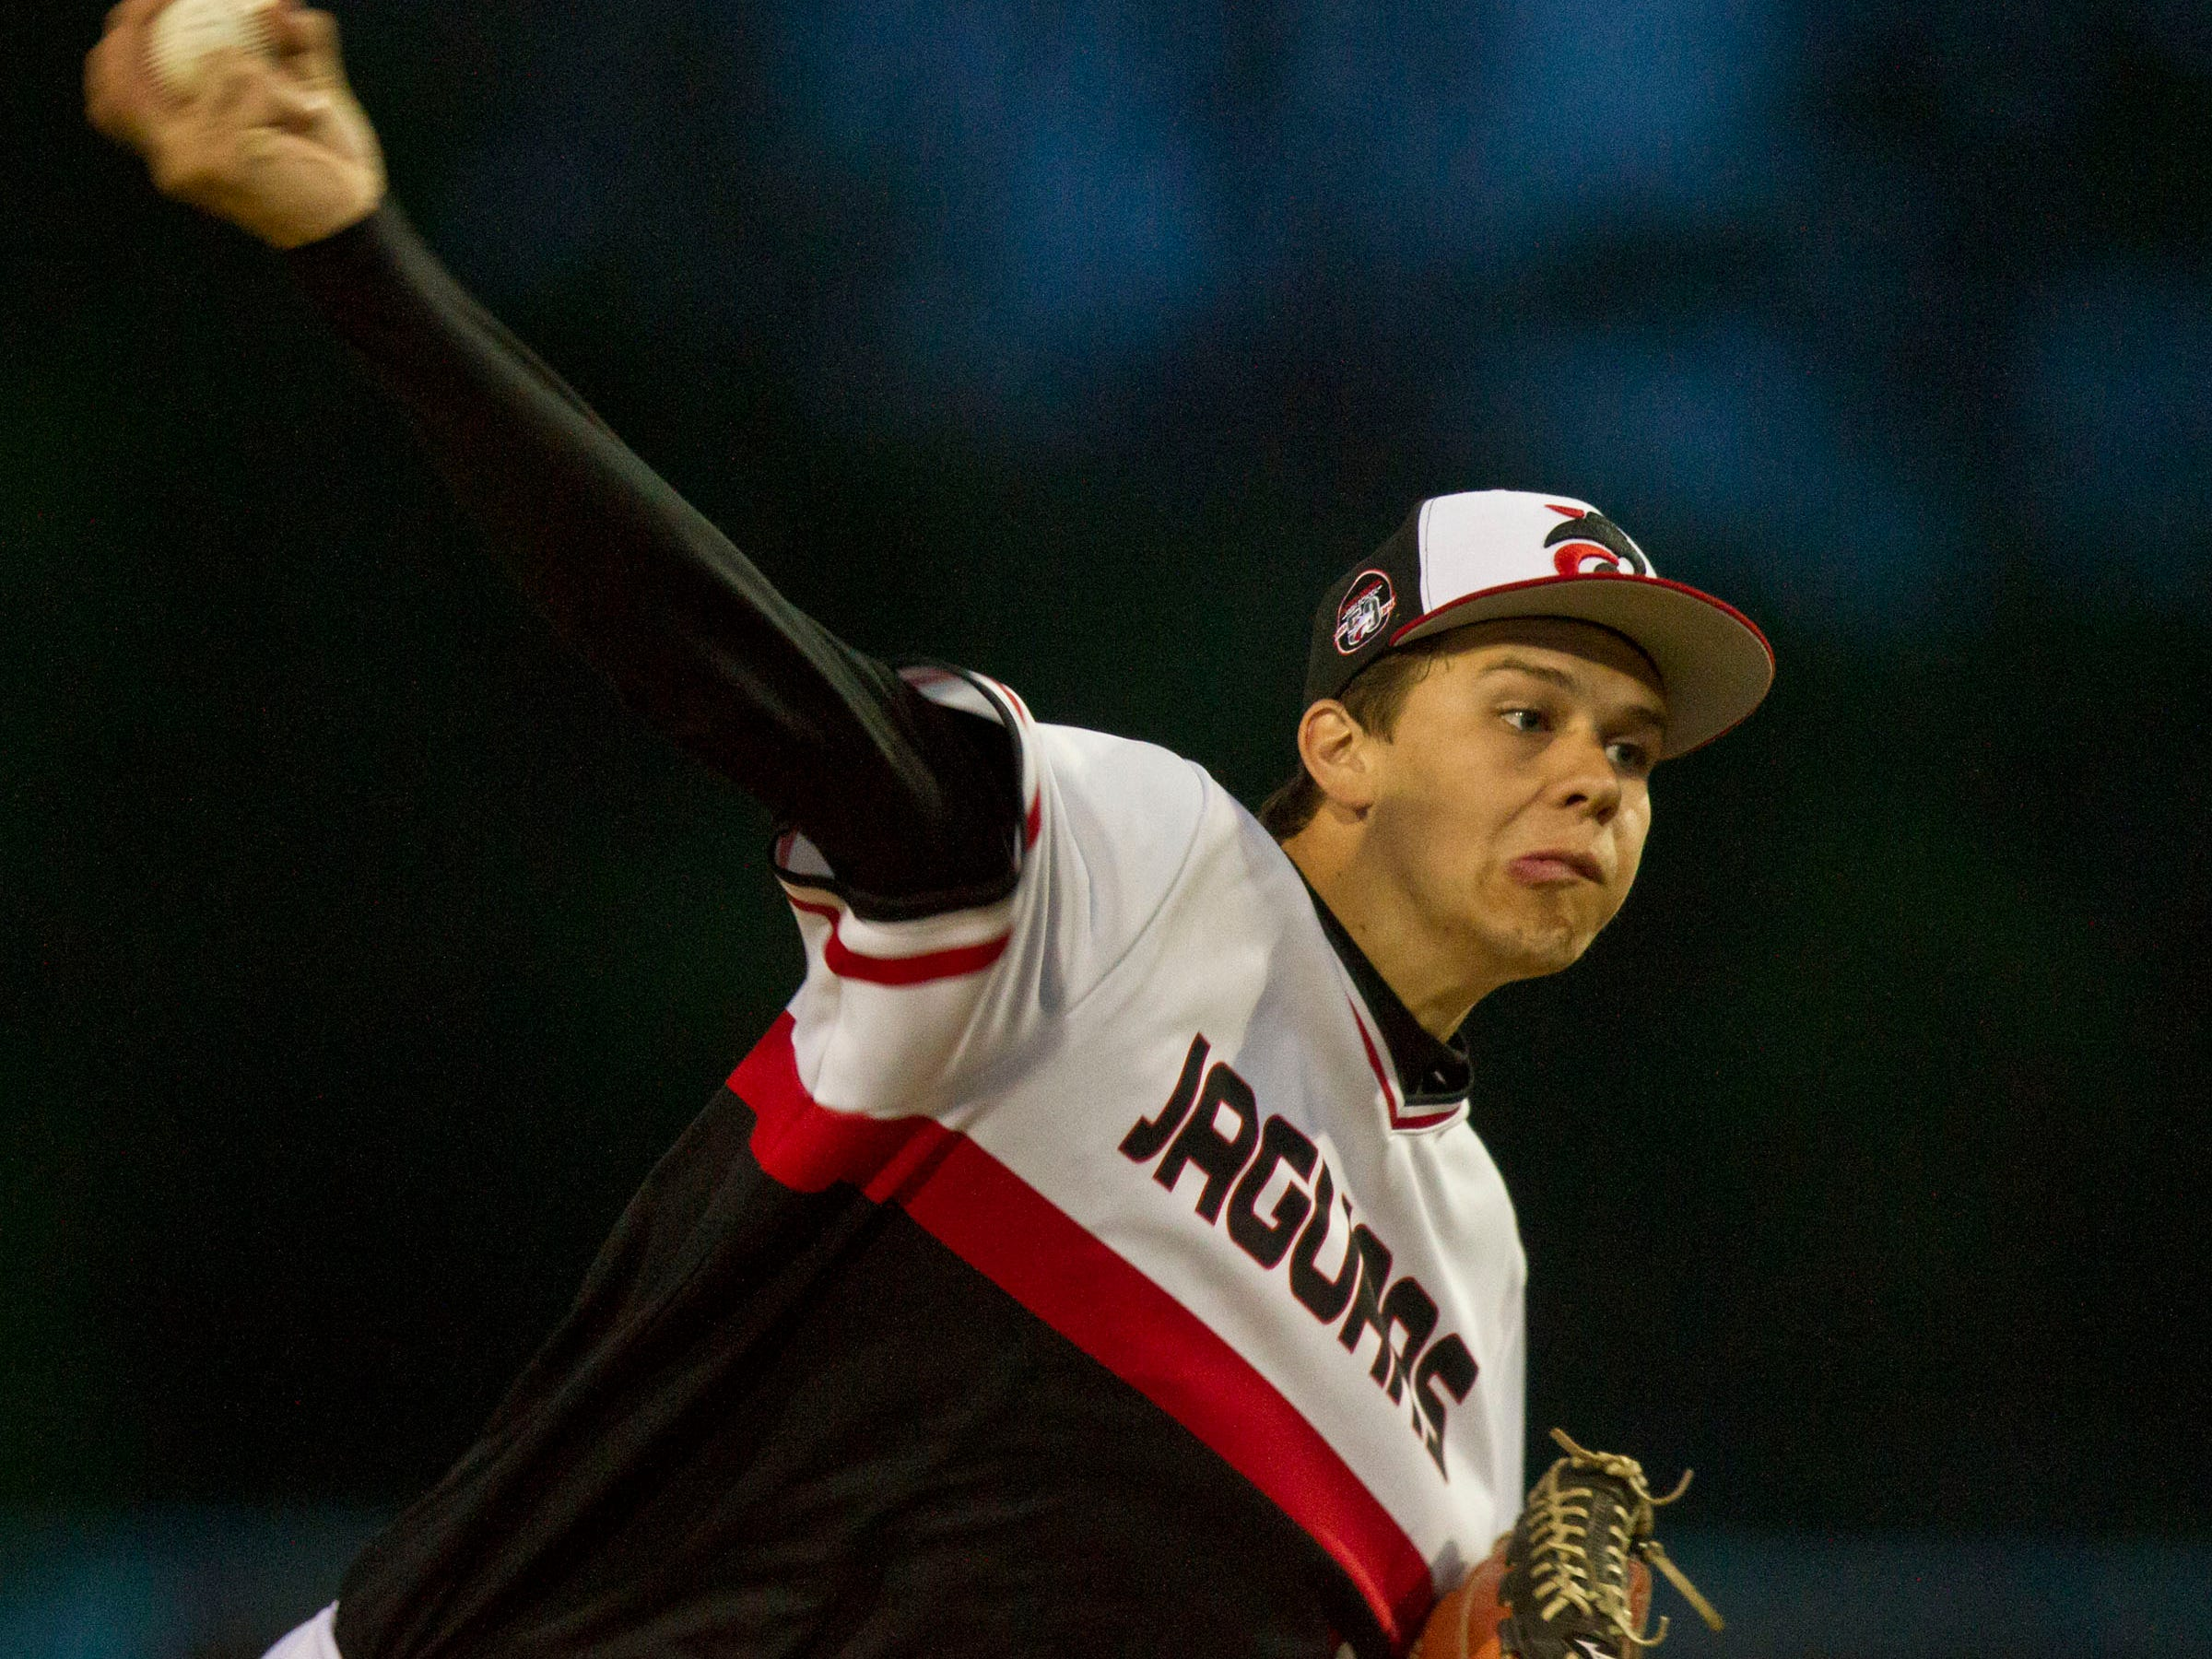 Jackson Memorial's starting pitcher Ryan Takas. The Ocean County Tournament championship game between Barnegat and Jackson Memorial takes place at Toms River High School East. Toms River, NJ Thursday, May 14, 2015 Doug Hood/Staff Photographer @dhoodhood